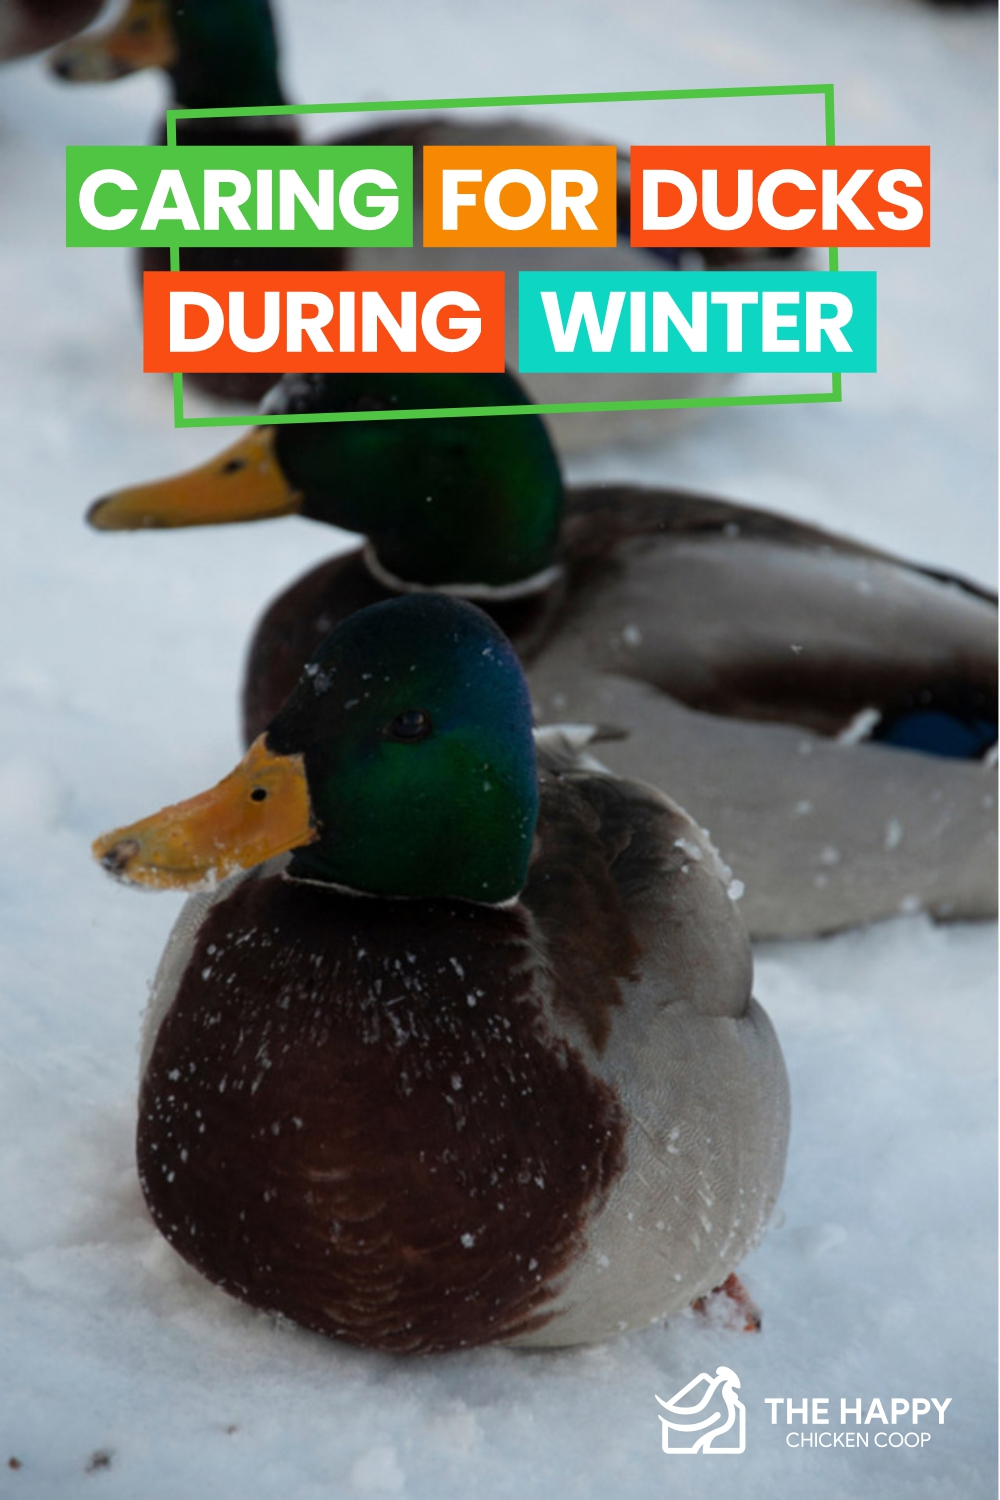 Caring For Ducks During Winter